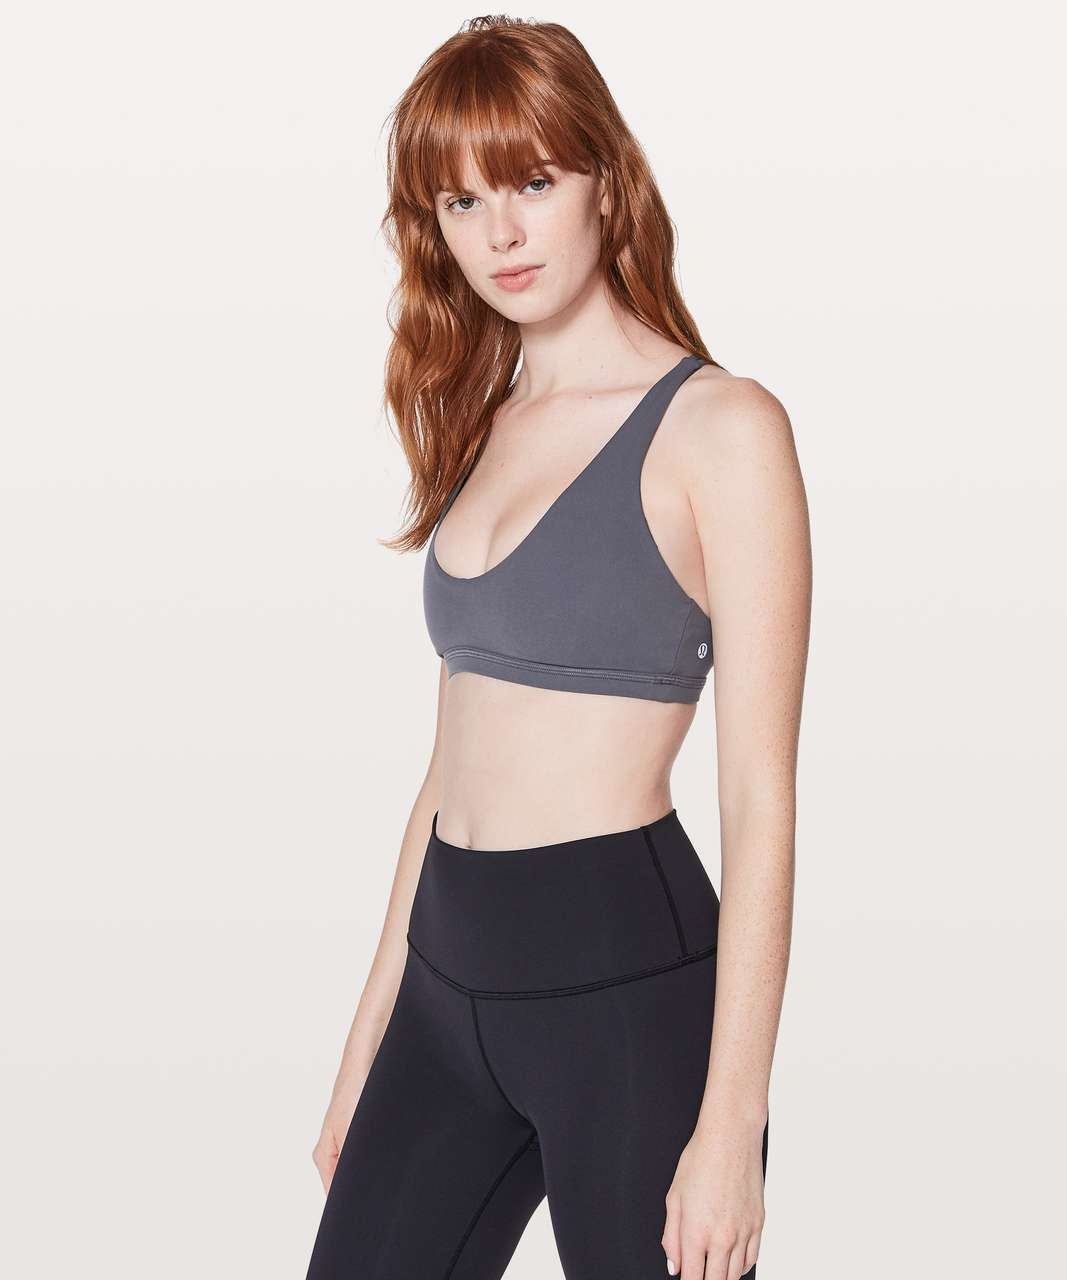 Lululemon Full Freedom Bra - Dark Shadow